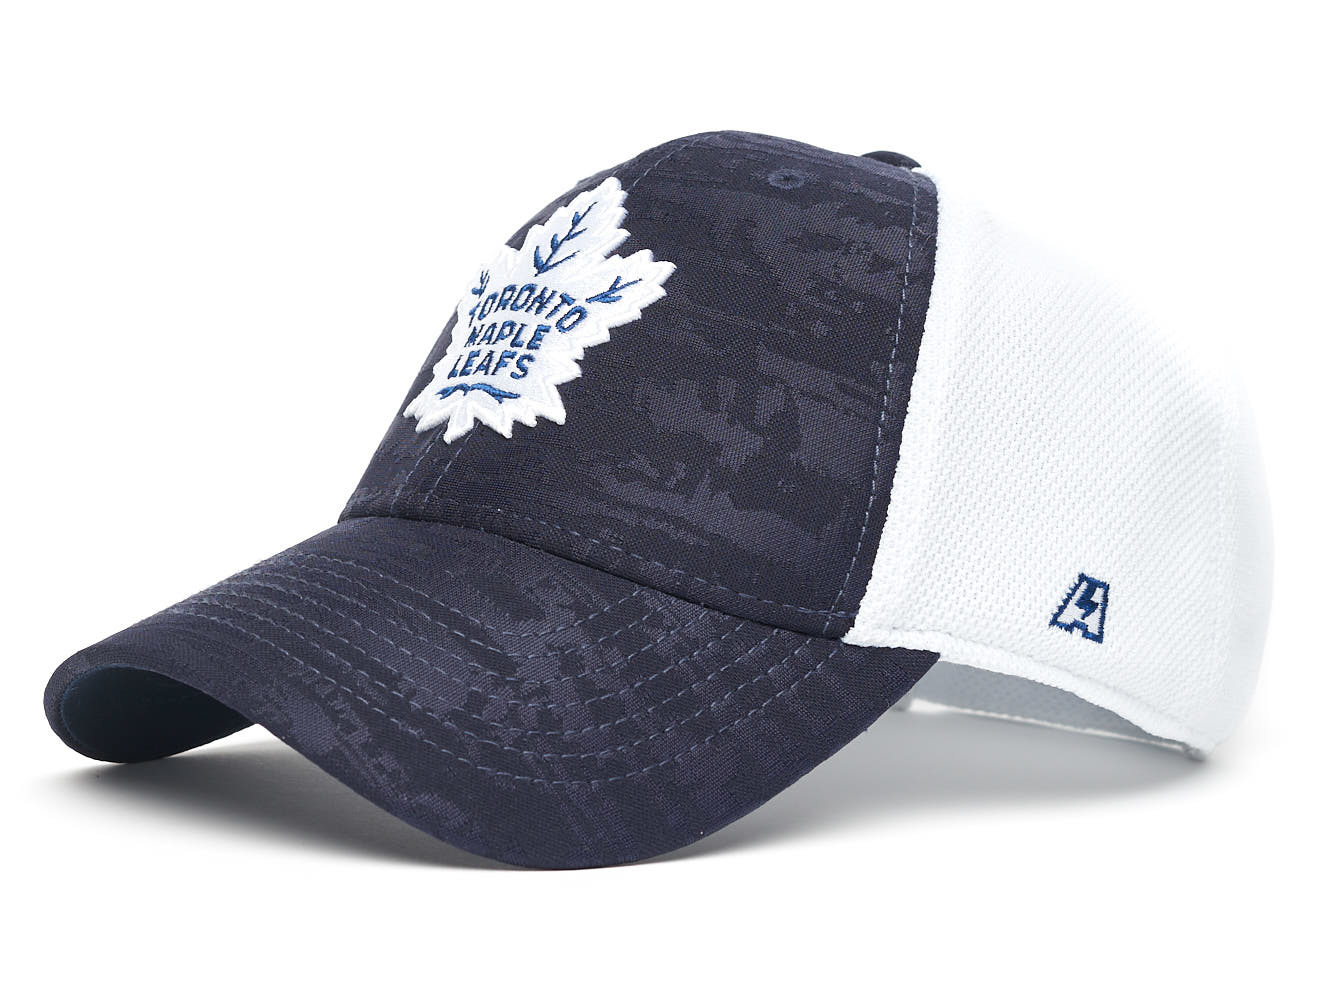 Бейсболка NHL Toronto Maple Leafs (размер M)